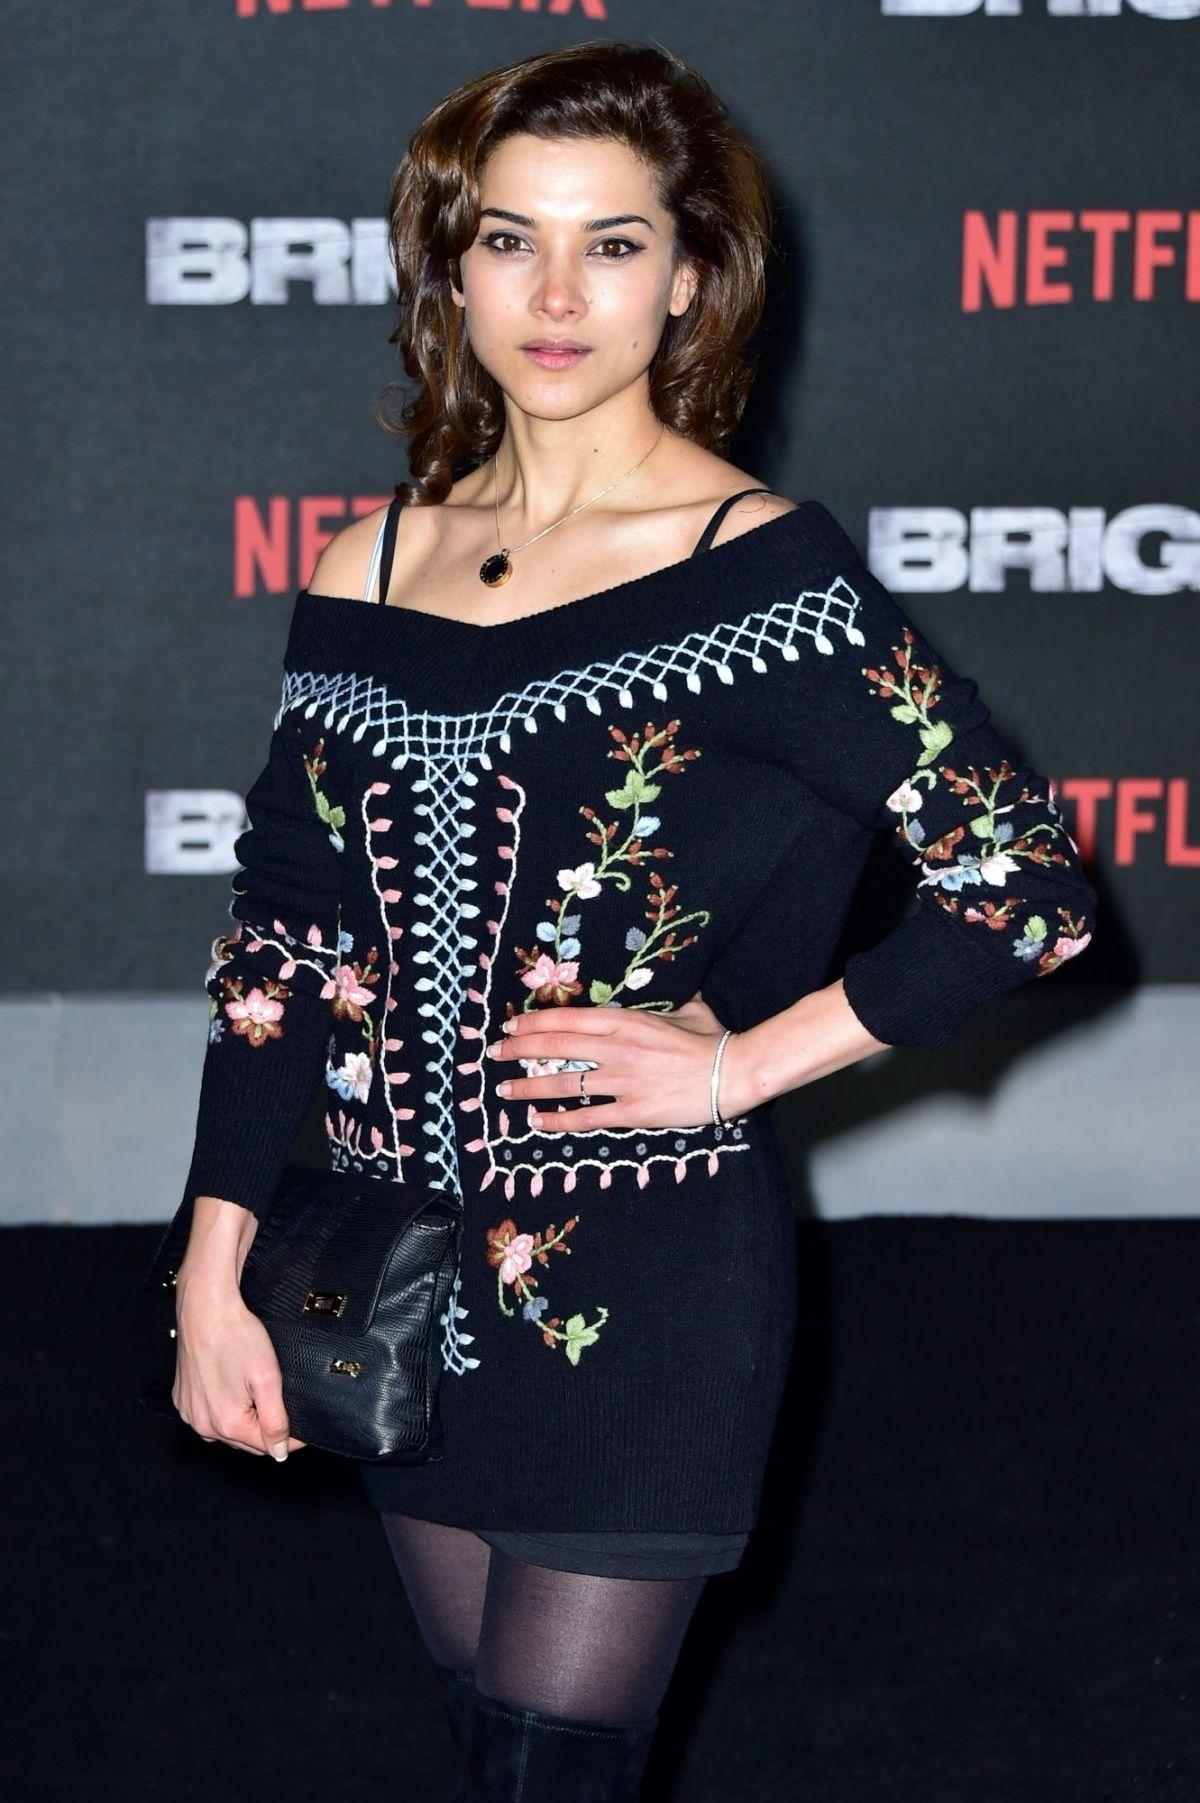 Amber Rose Revah hot pictures